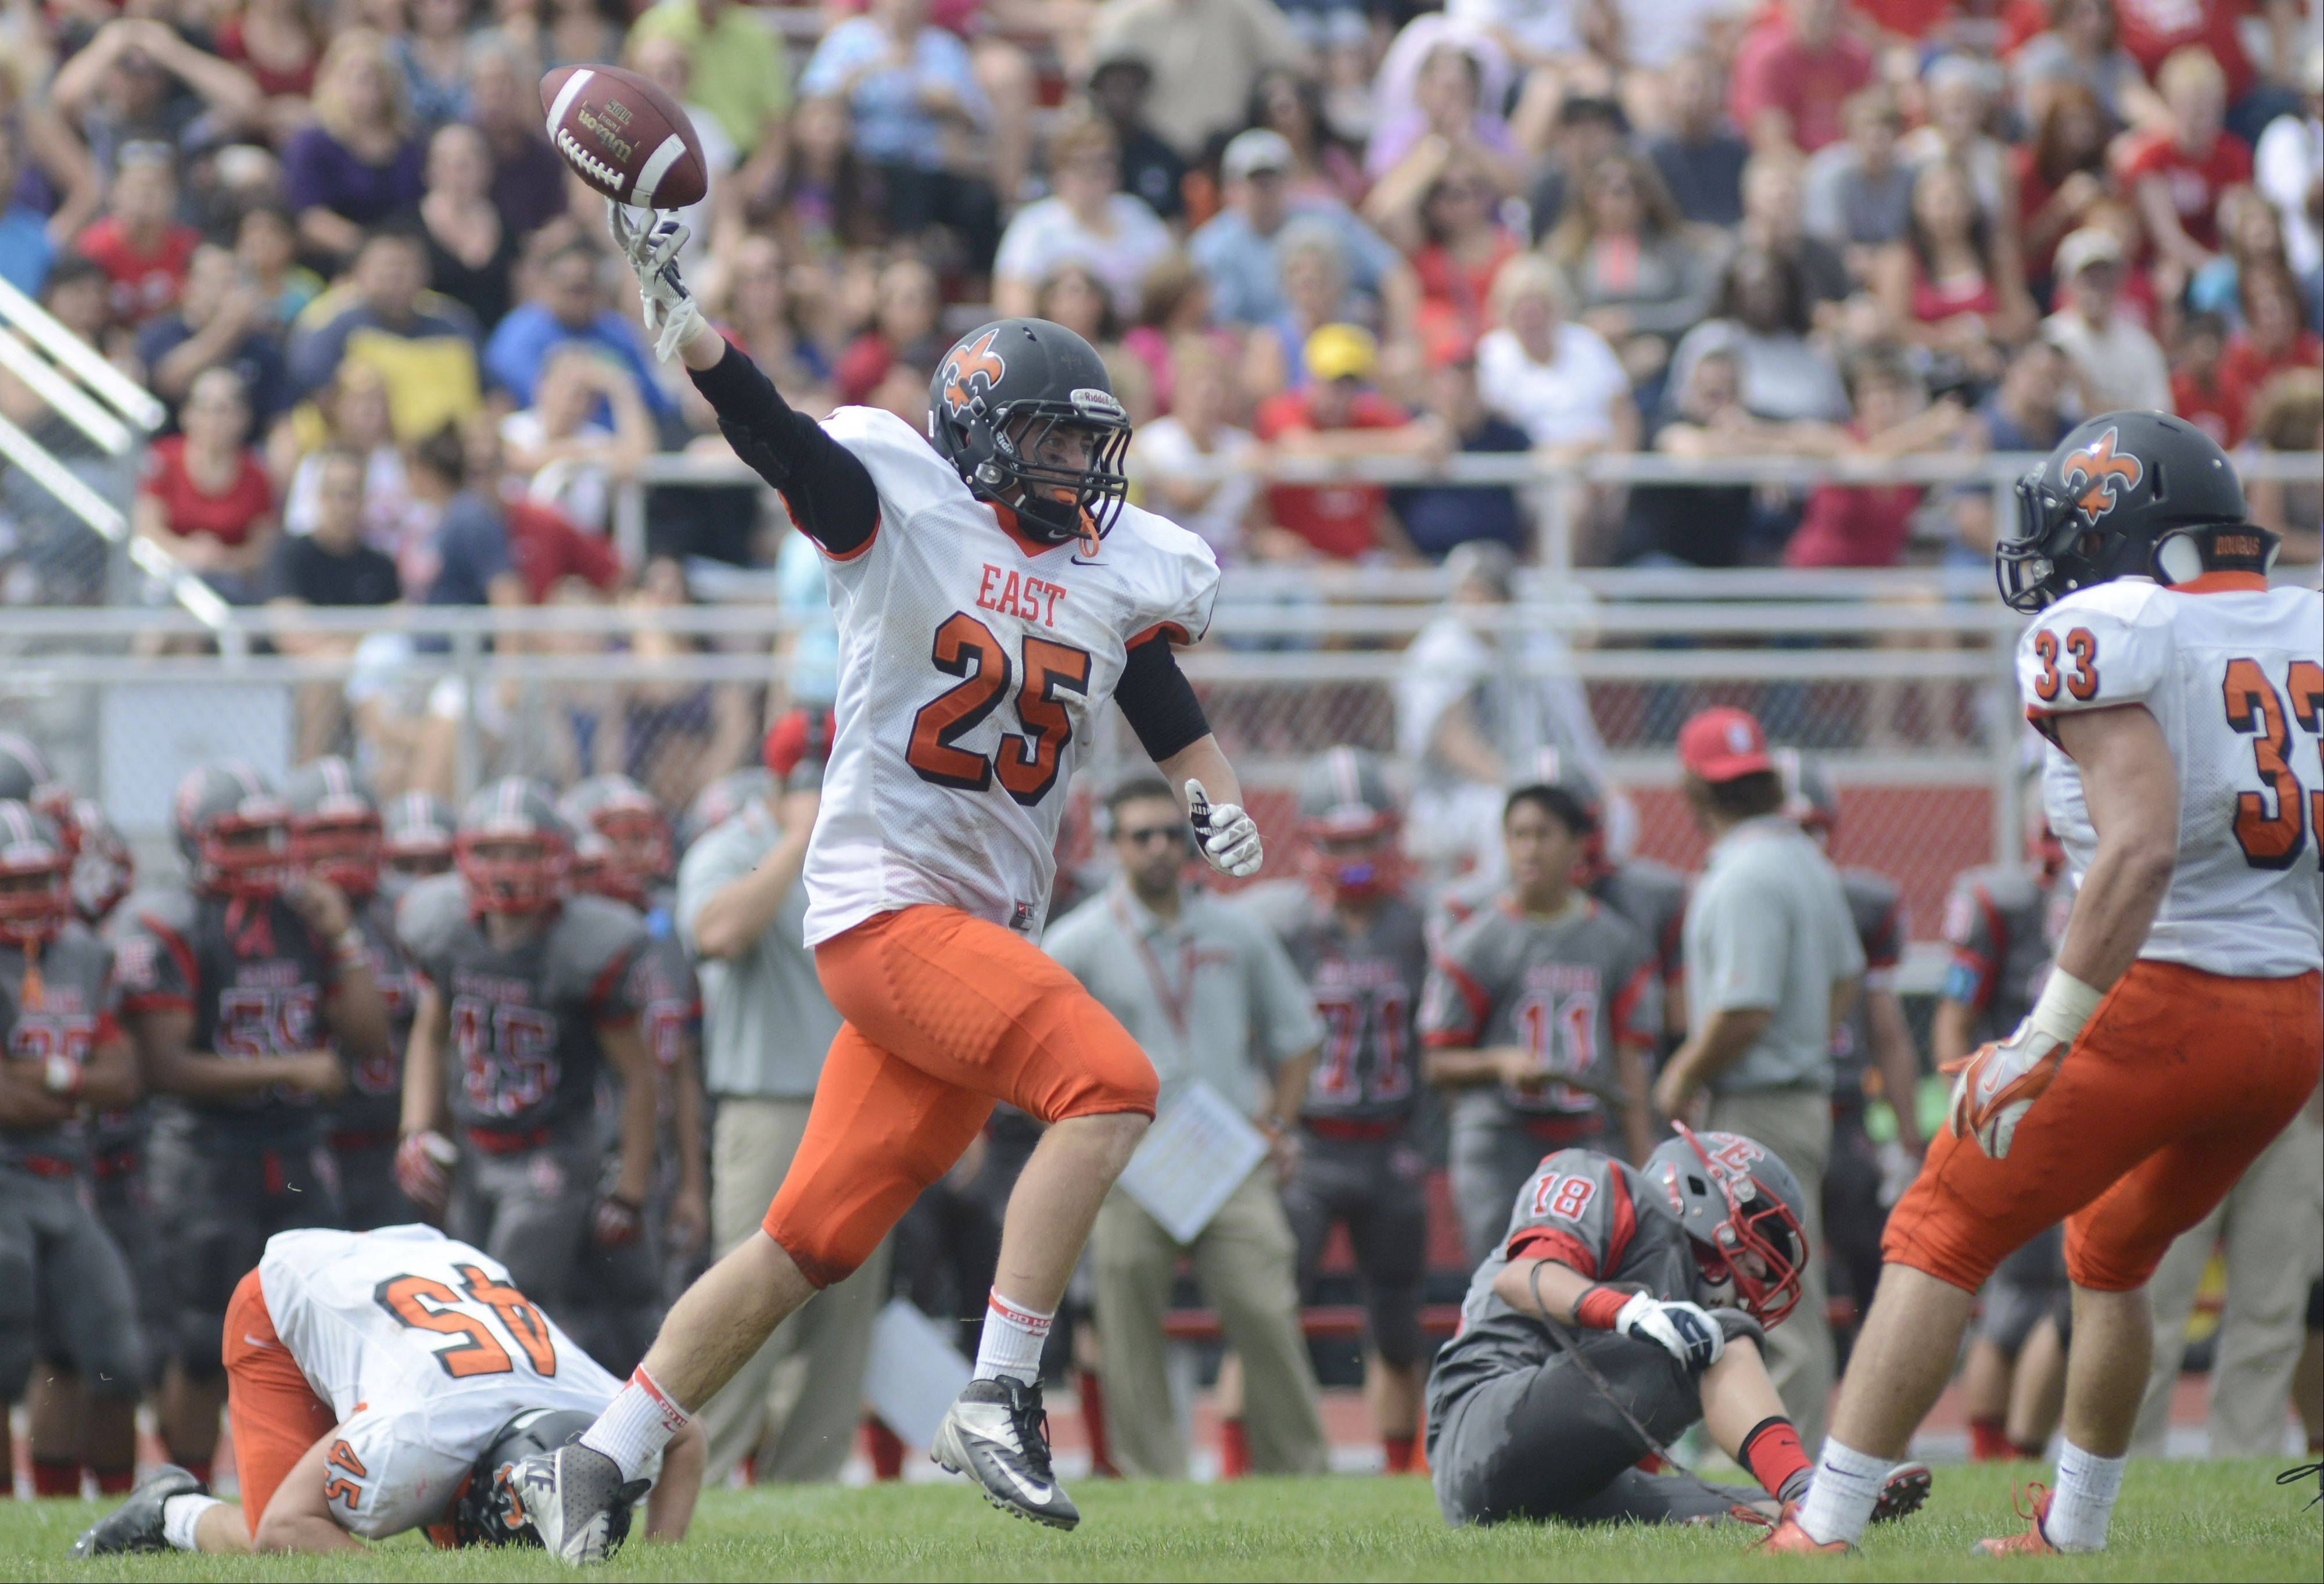 St. Charles East's Scott Roback celebrates an interception in the first quarter on Saturday, August 31.